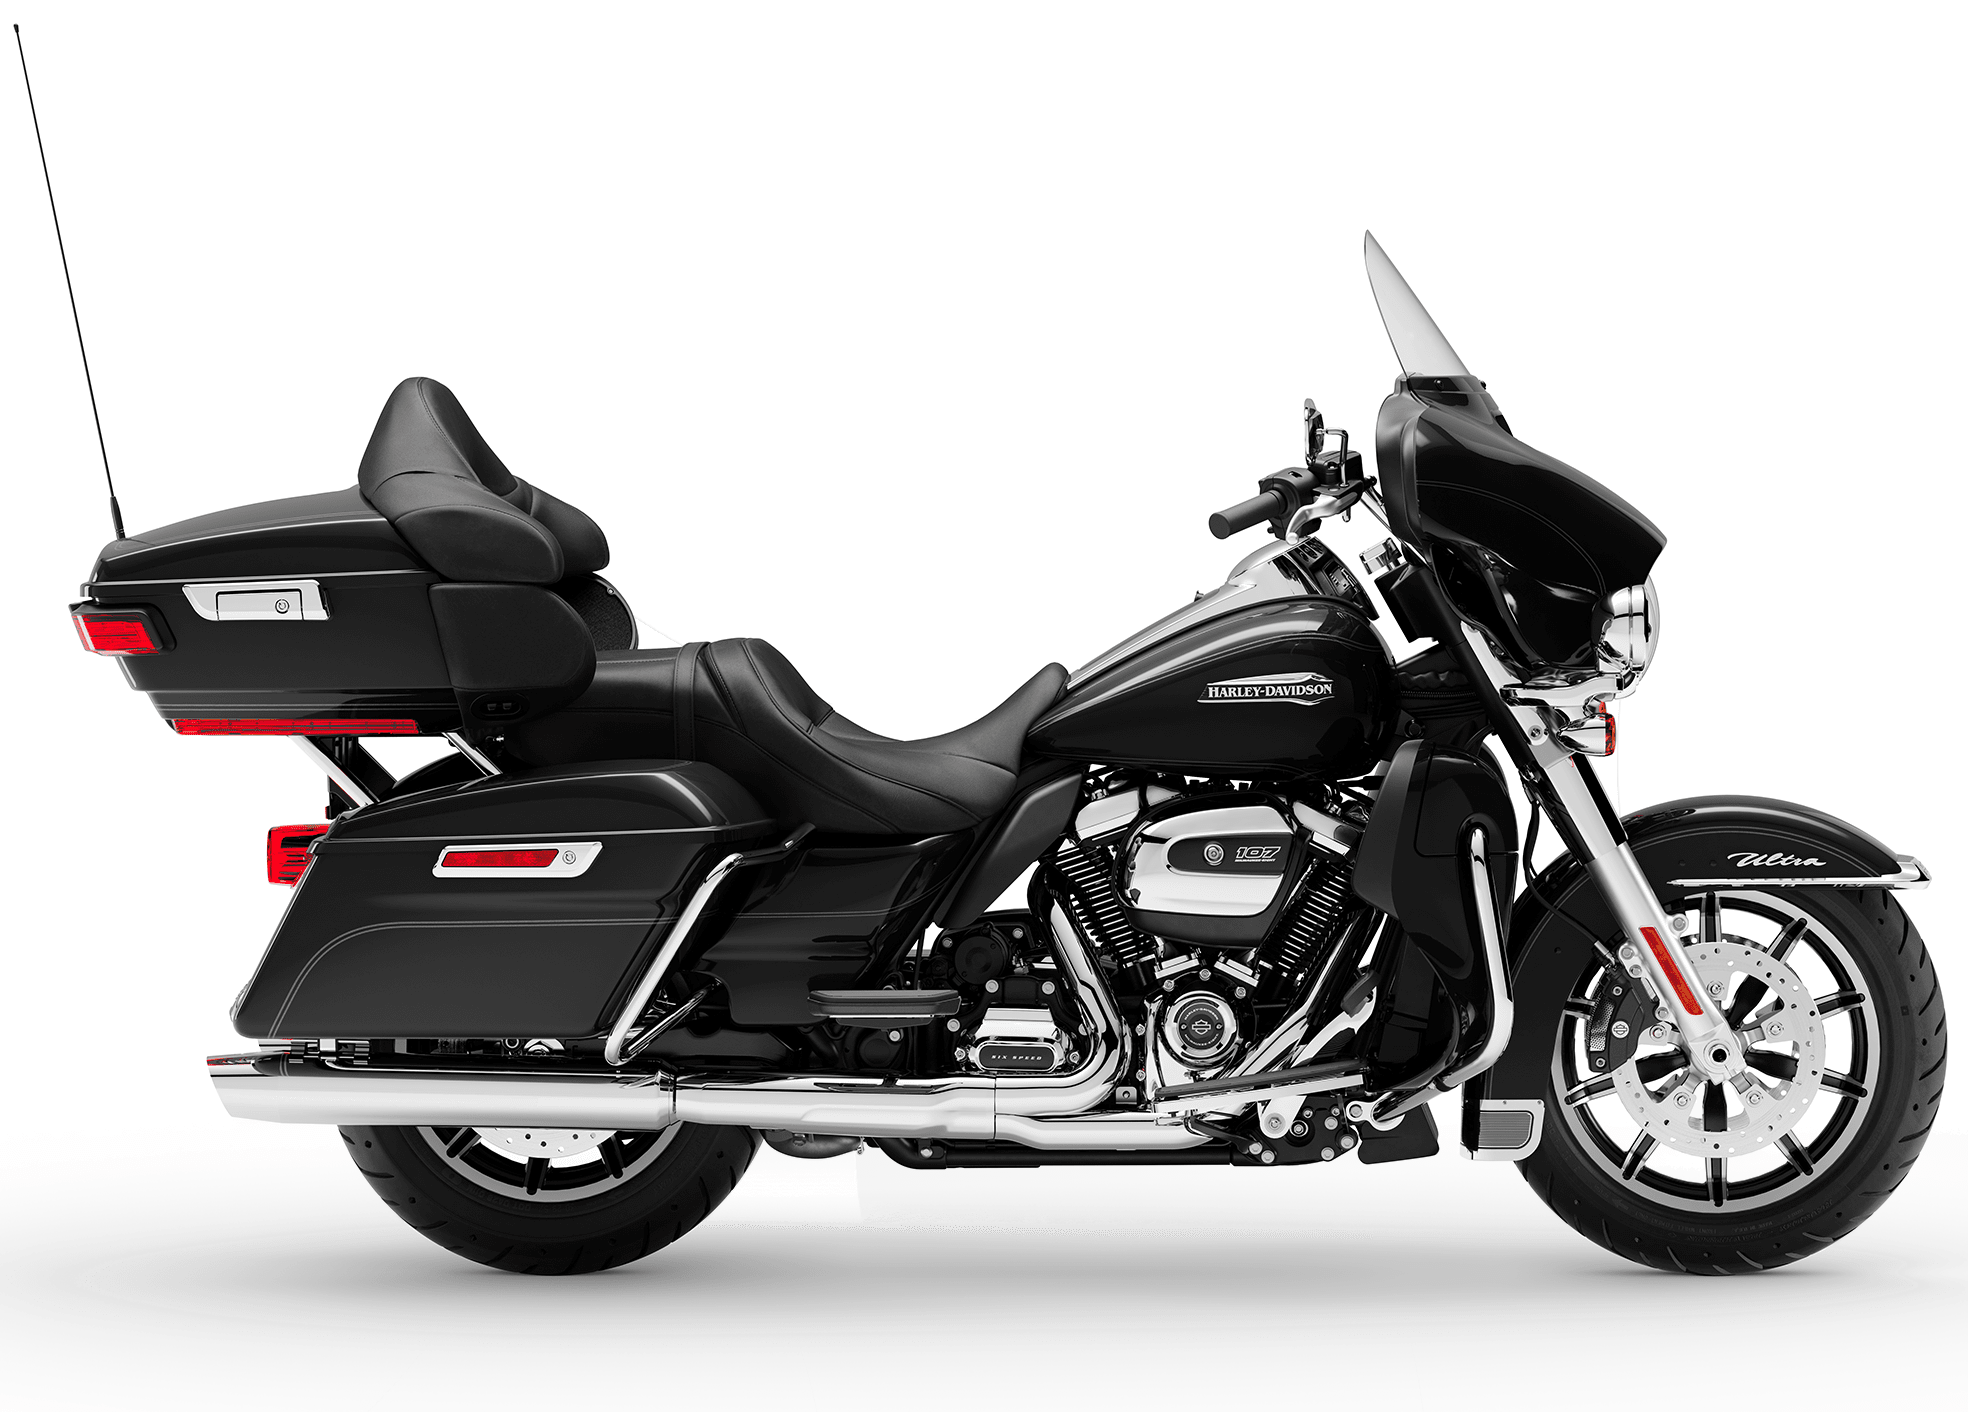 2019 Harley-Davidson H-D Touring Electra Glide Ultra Classic Vivid Black